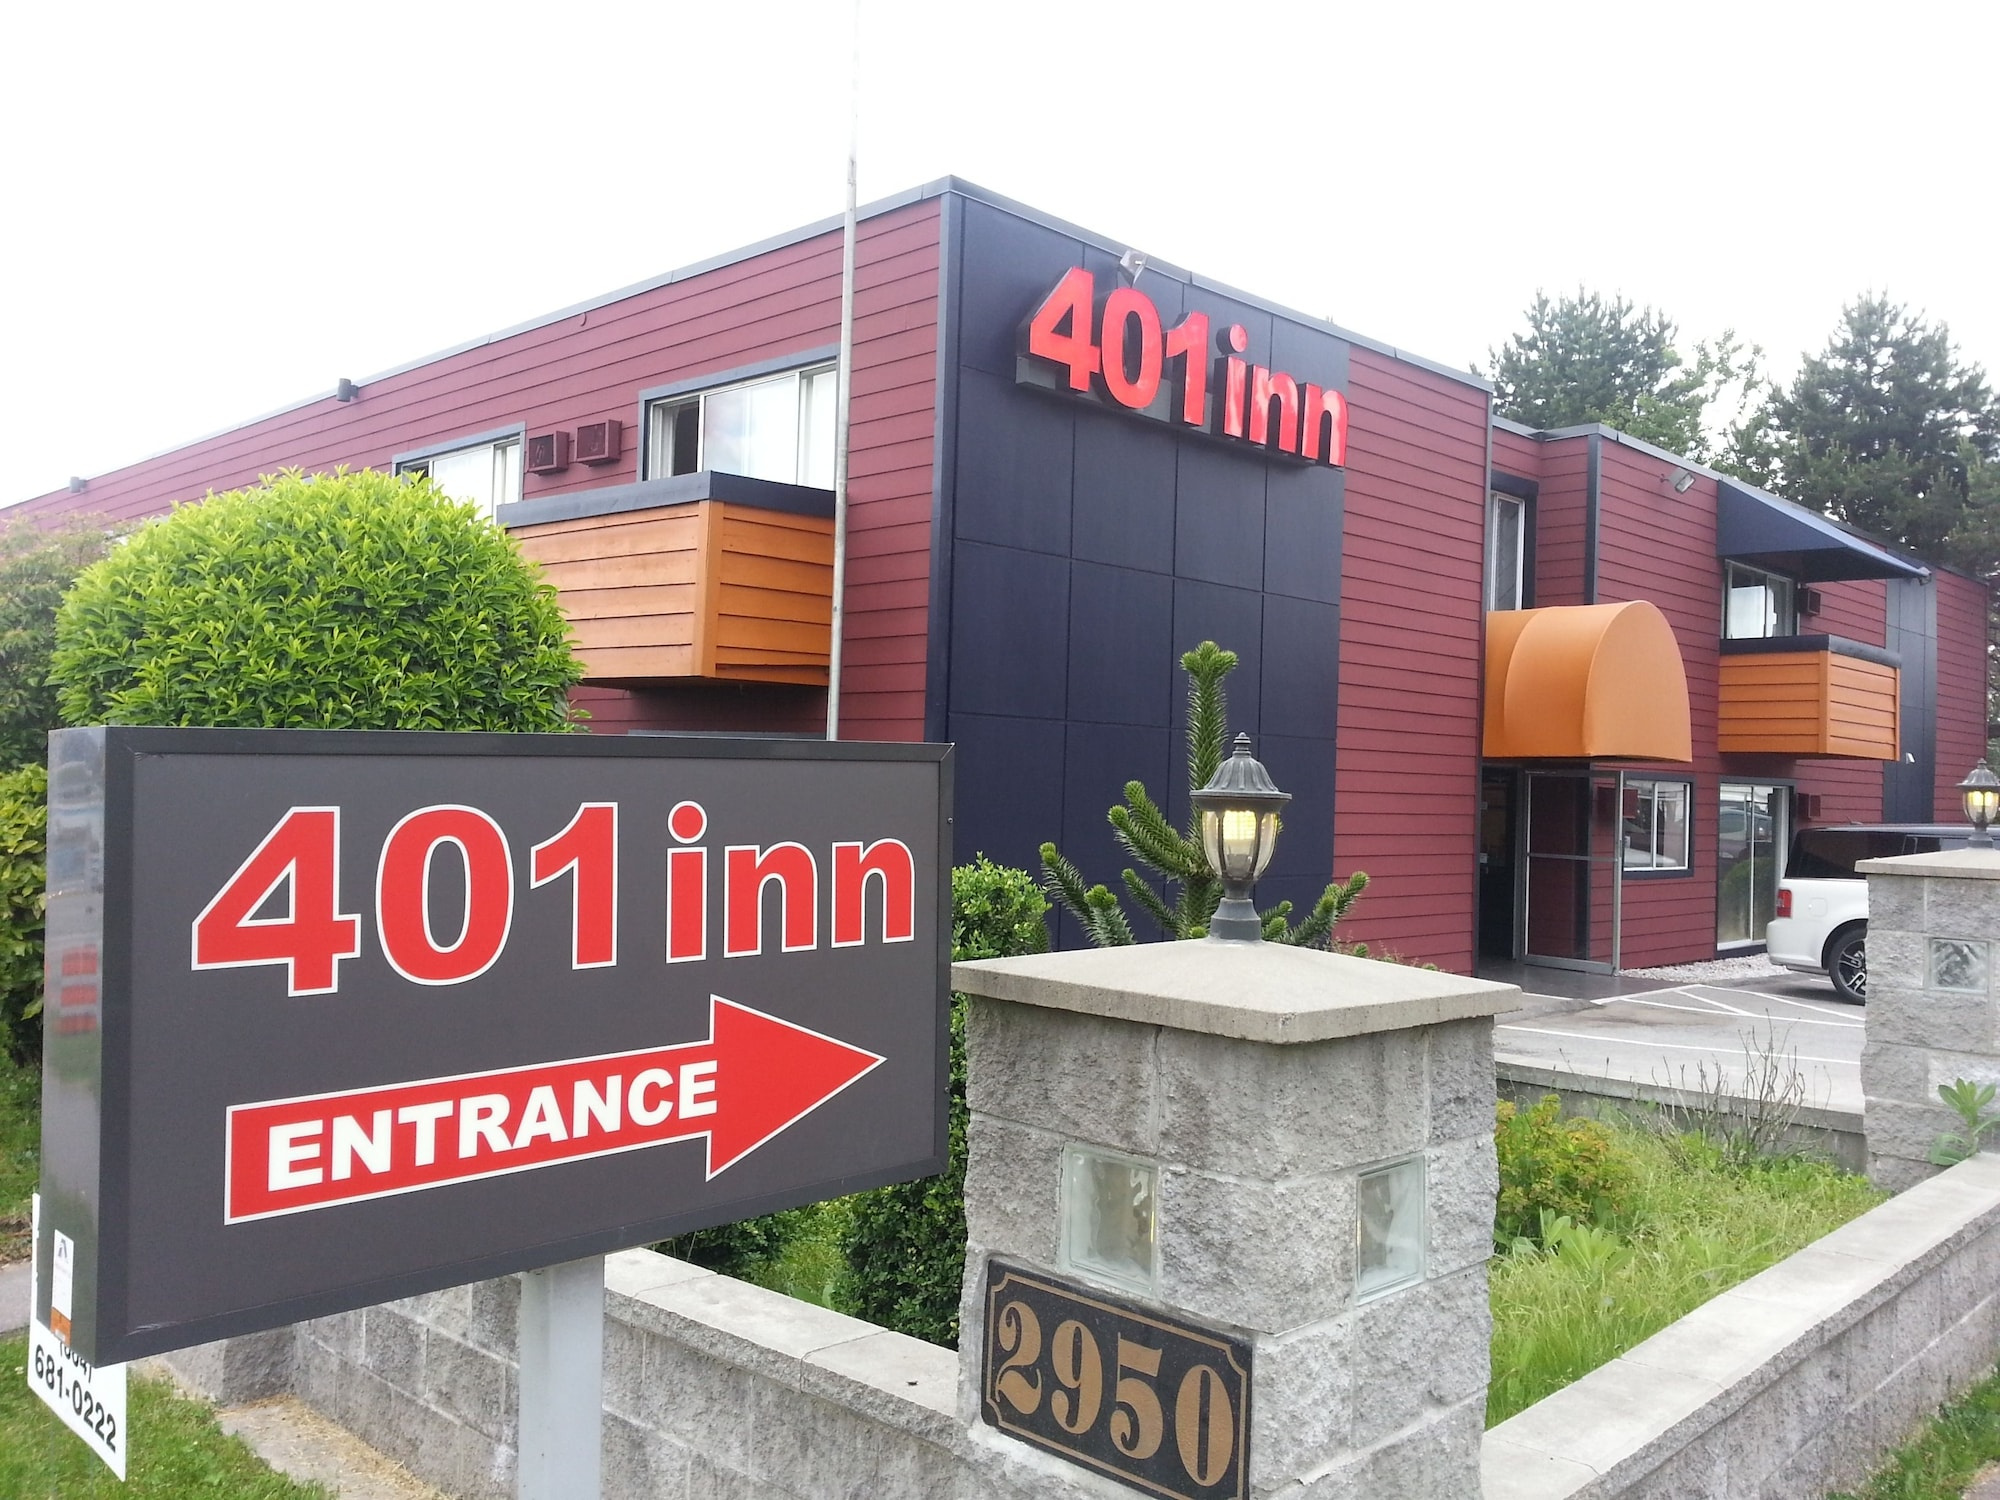 The New 401 Inn, Greater Vancouver